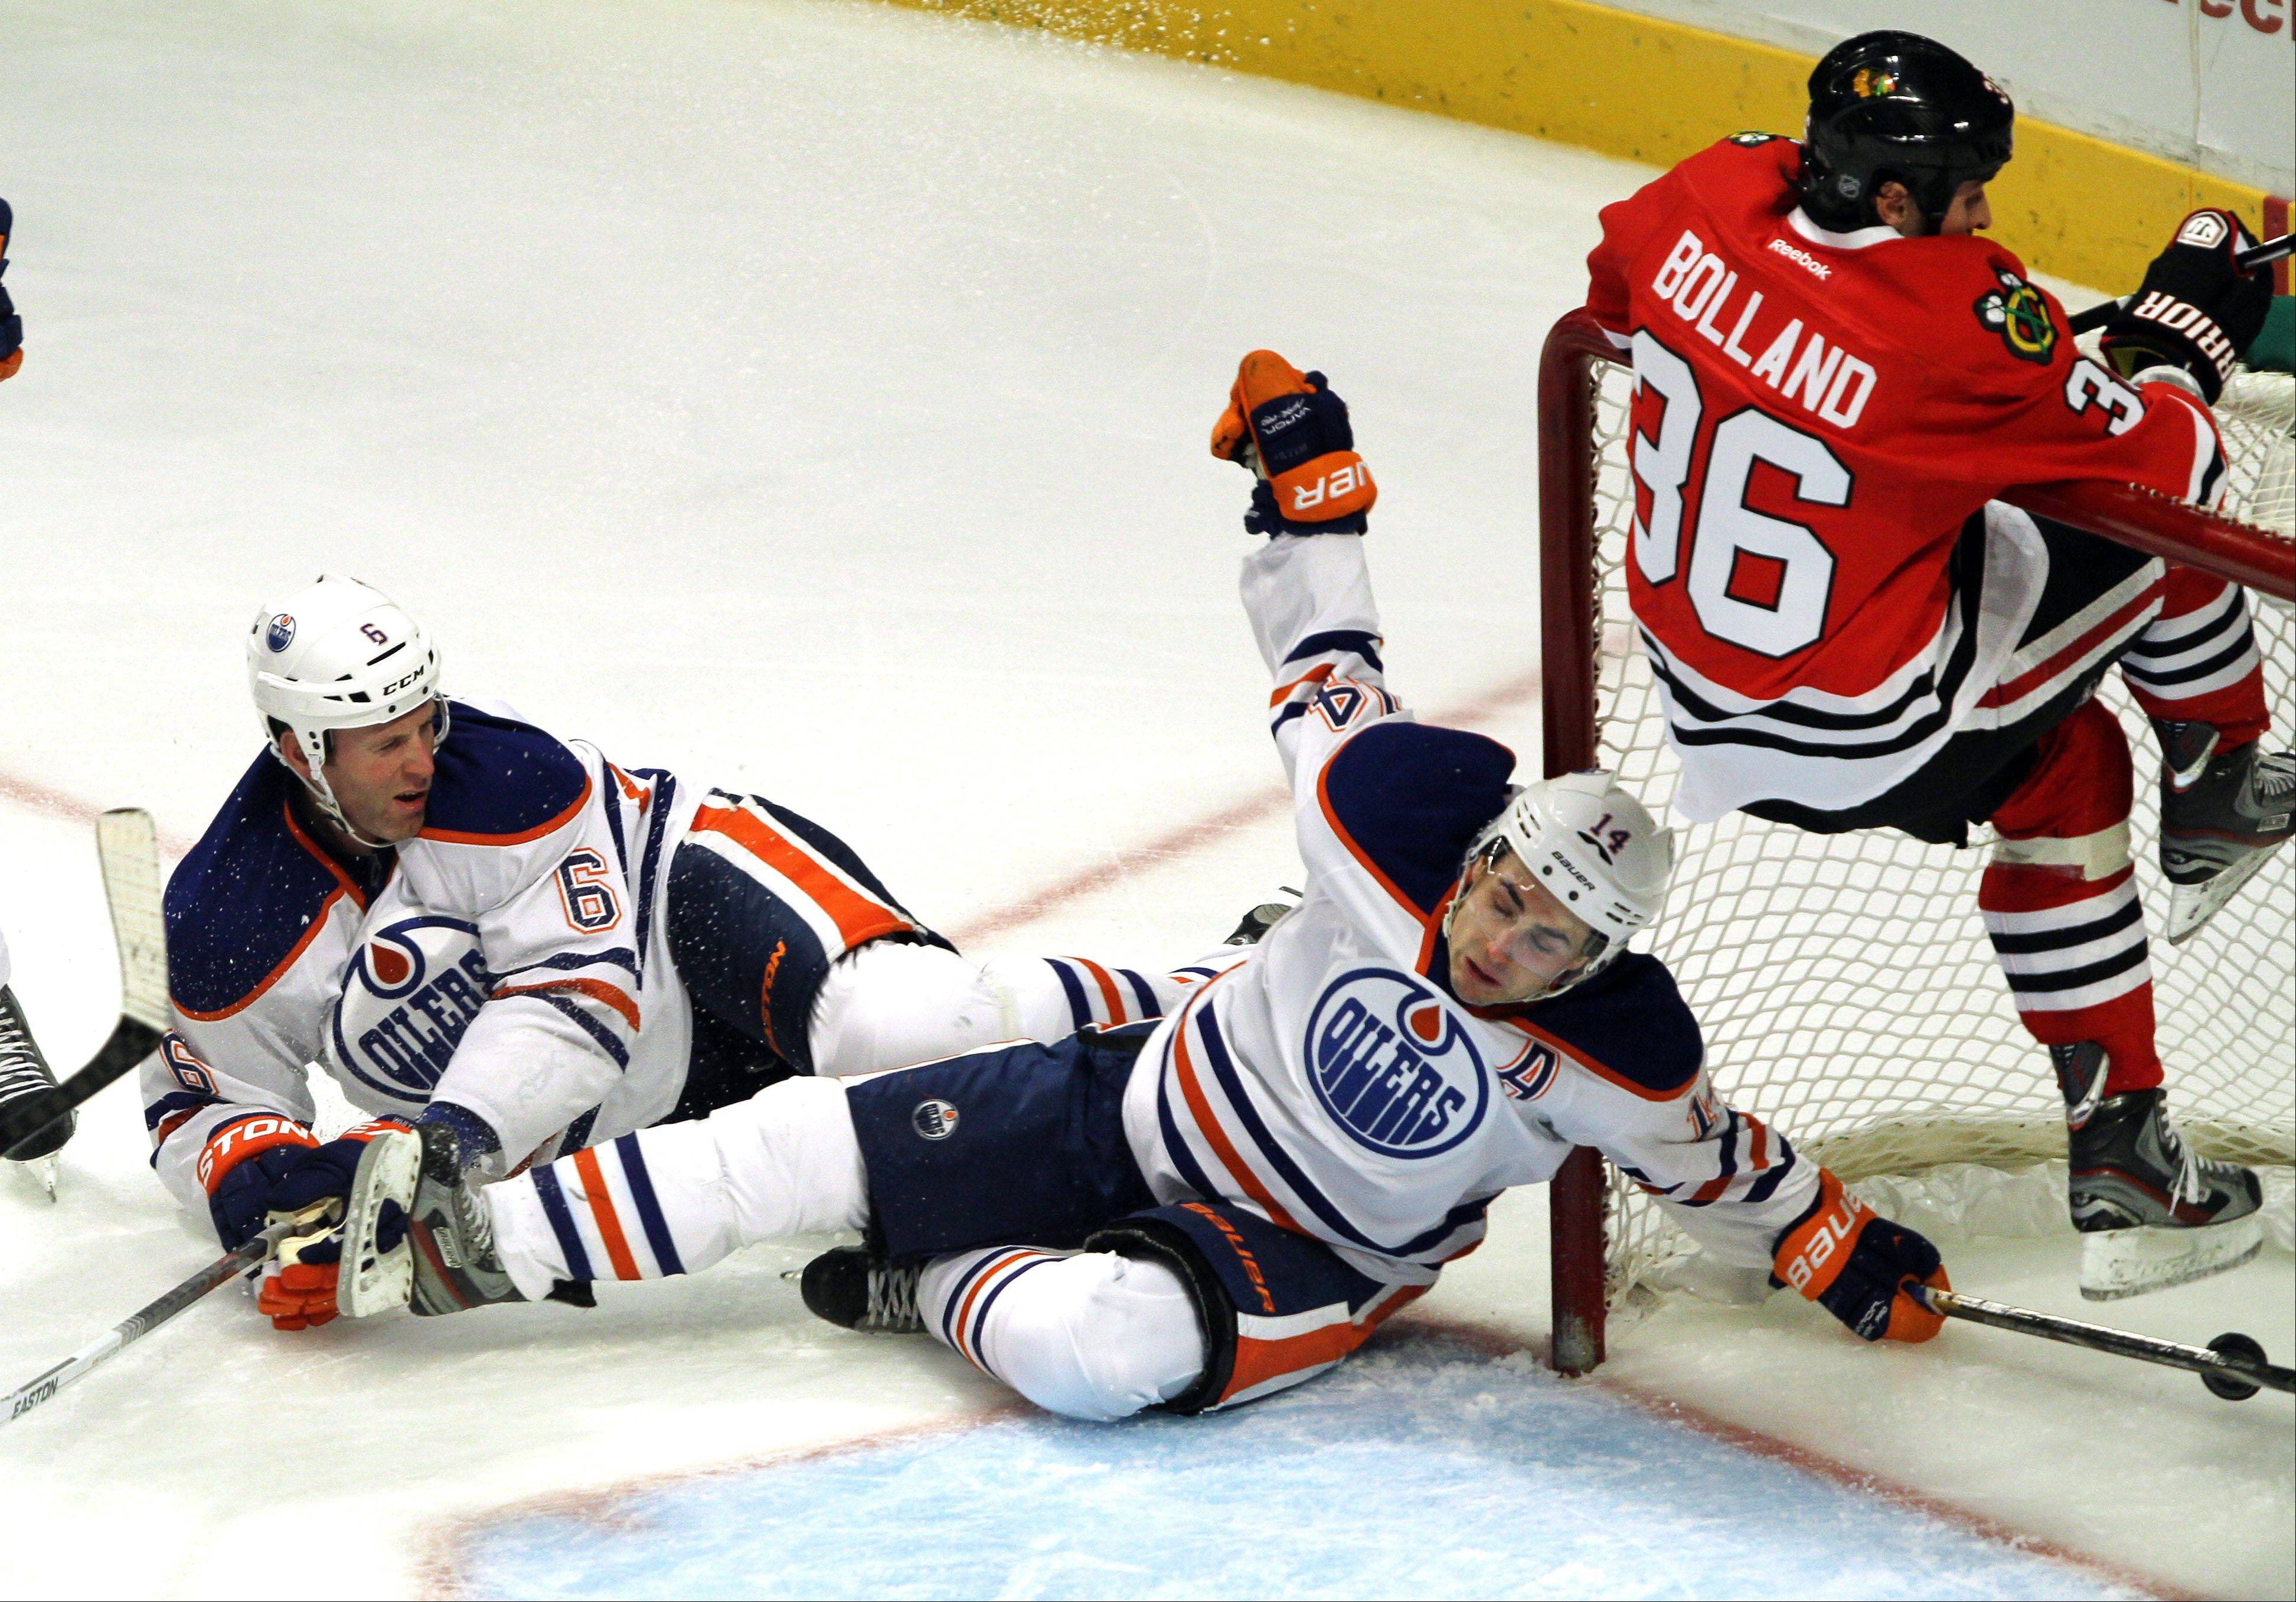 Blackhawks center Dave Bolland runs into the net as Patrick Kane scores in Sunday�s second period at United Center. It was a wild goal in a wild game that saw the Edmonton Oilers hold on for a 6-5 victory.